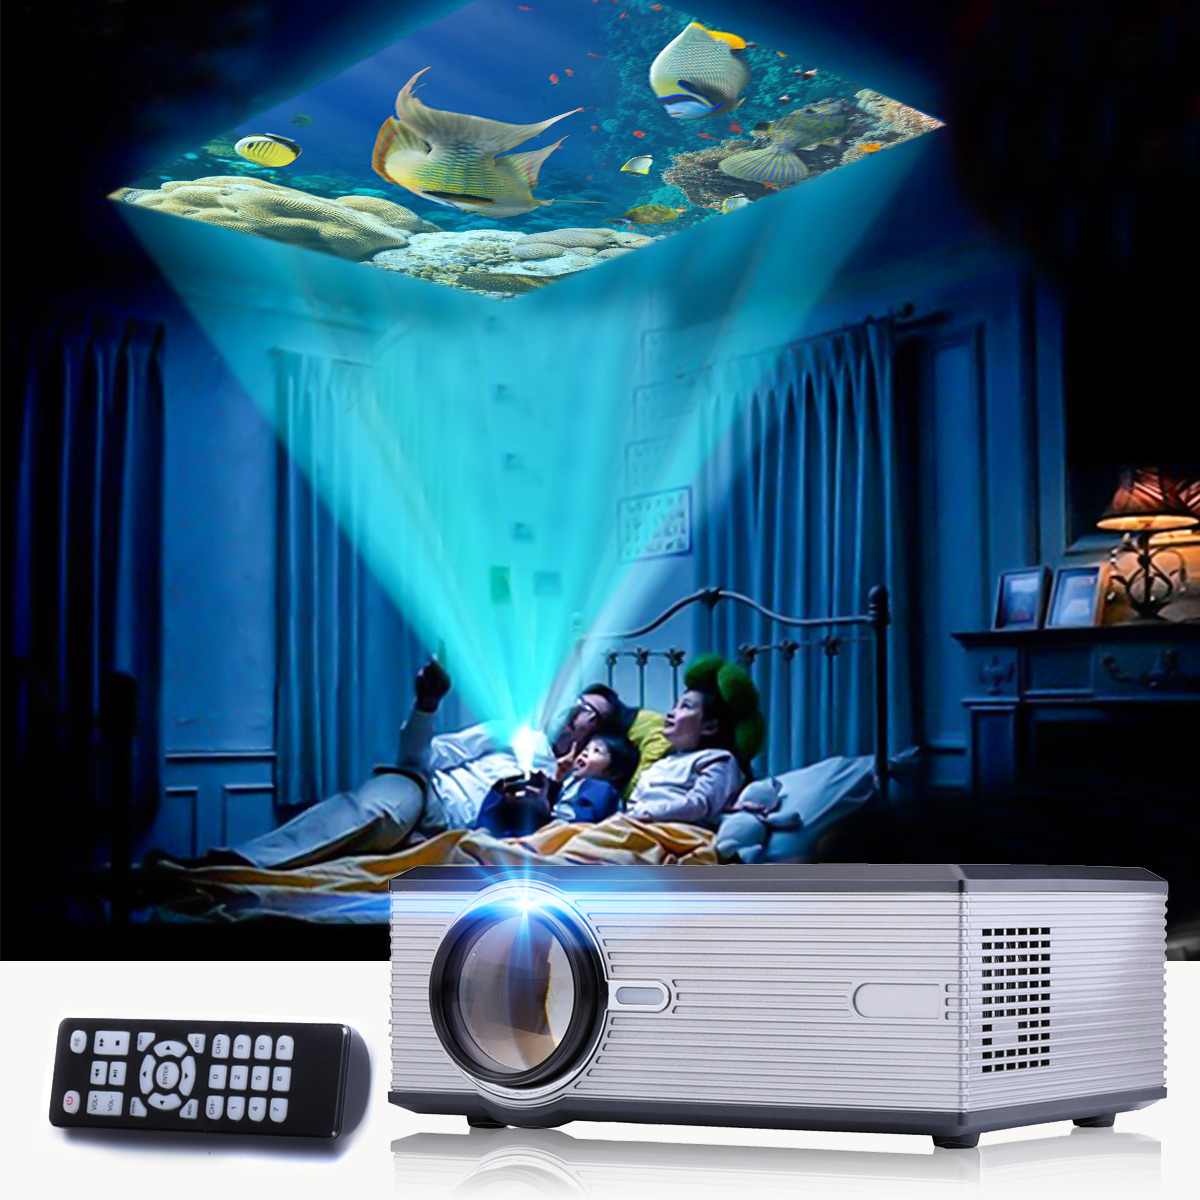 Sliver 1080P LED Video Projector for Home Theater7000Lumens Full HD Mini projector HDMI/USB/SD/AV/VGA HOME CINEMA poner saund dlp100w pocket hd portable dlp projector micro wireless multi screen mini led battery hdmi usb portable home cinema